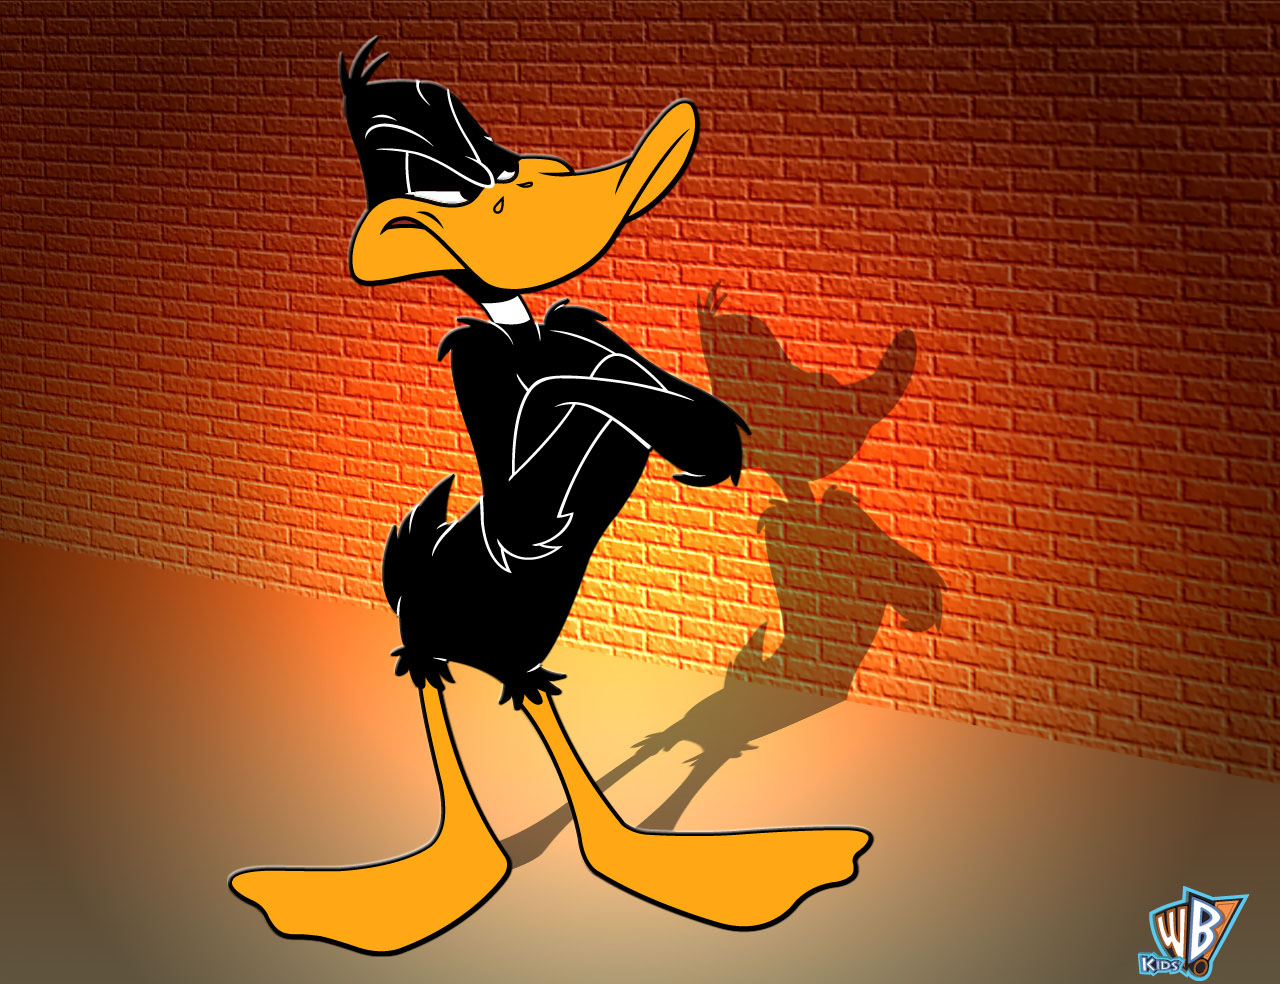 Devil daffy duck - photo#11